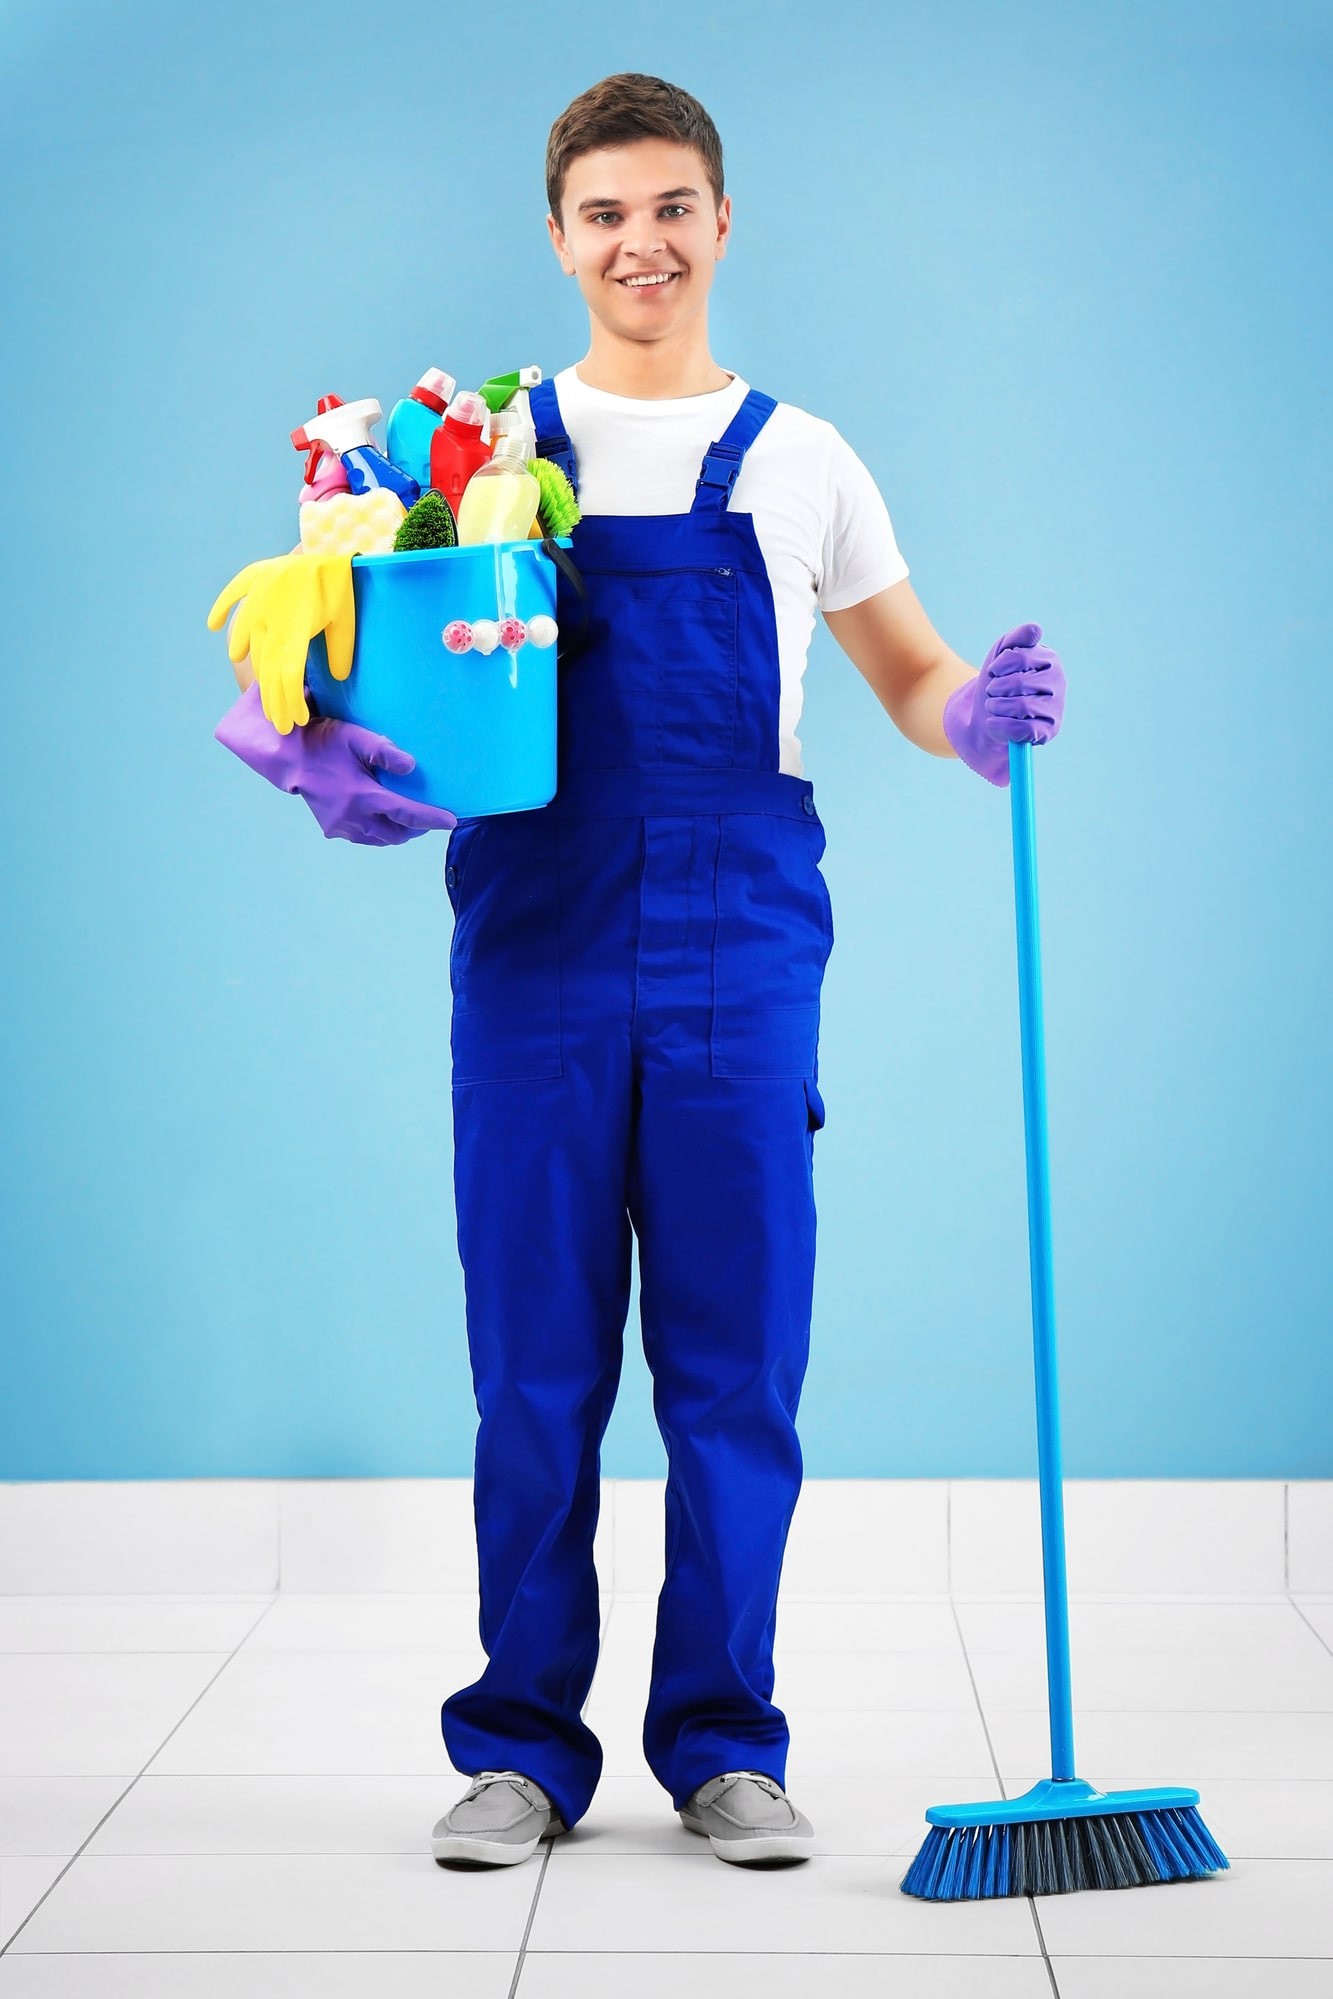 Contact Cleaning Services